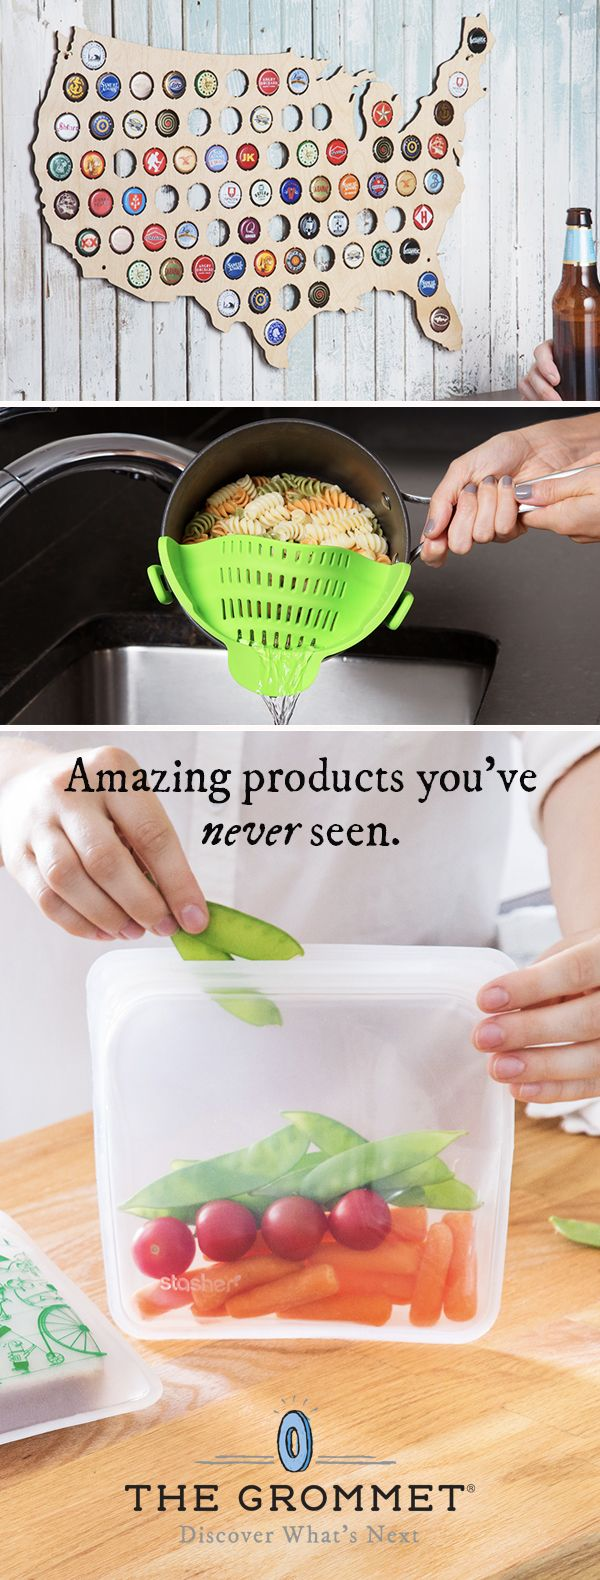 New Kitchen Products 219 best unique kitchen products images on pinterest | kitchen